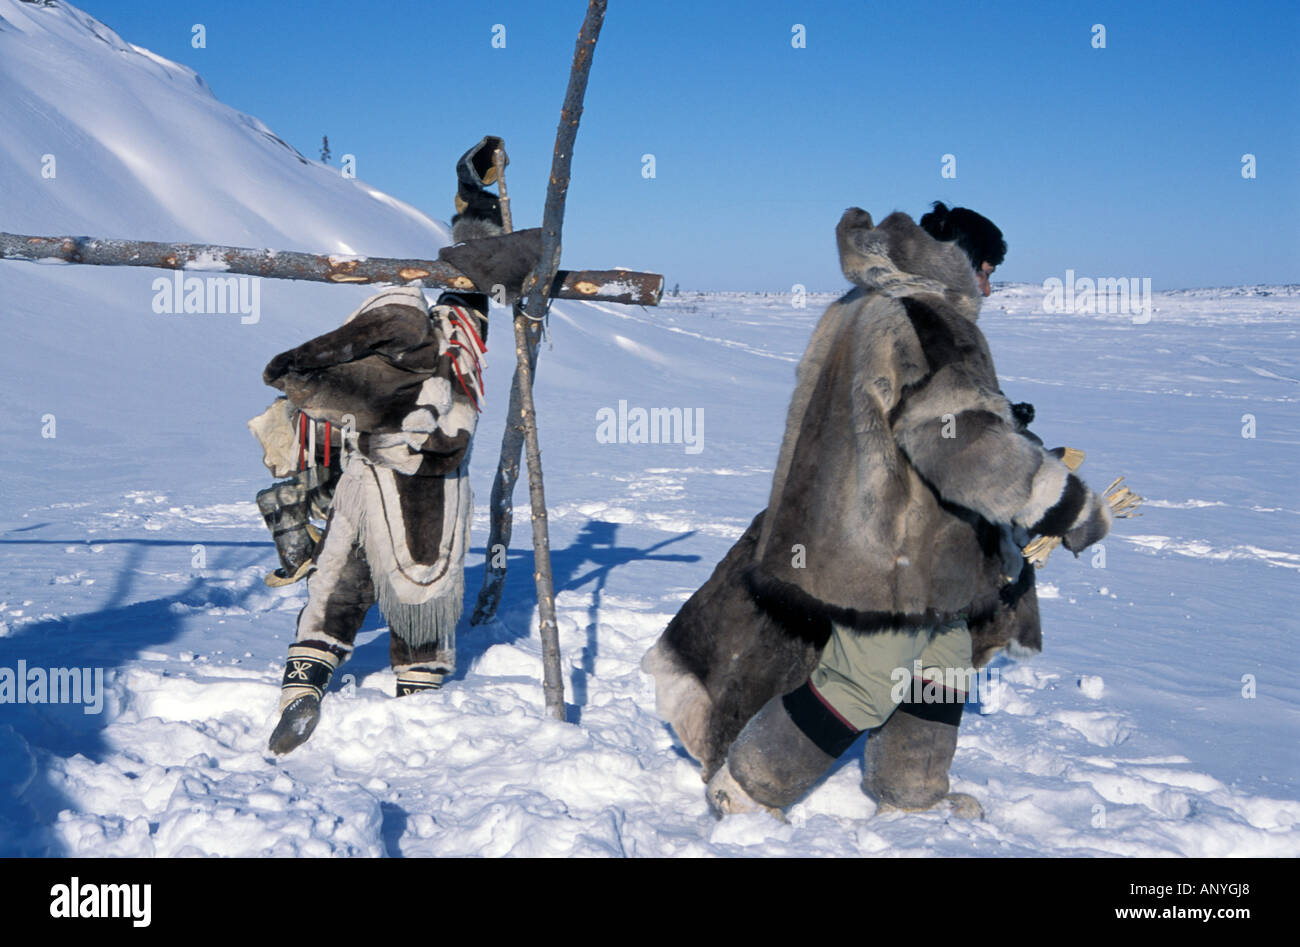 a history of the inuit society in north america Alaska and russia used to be connected it made this huge land mass so the inuit was able to get to north america because of water level rising, that land piece is now underw ater and what is.